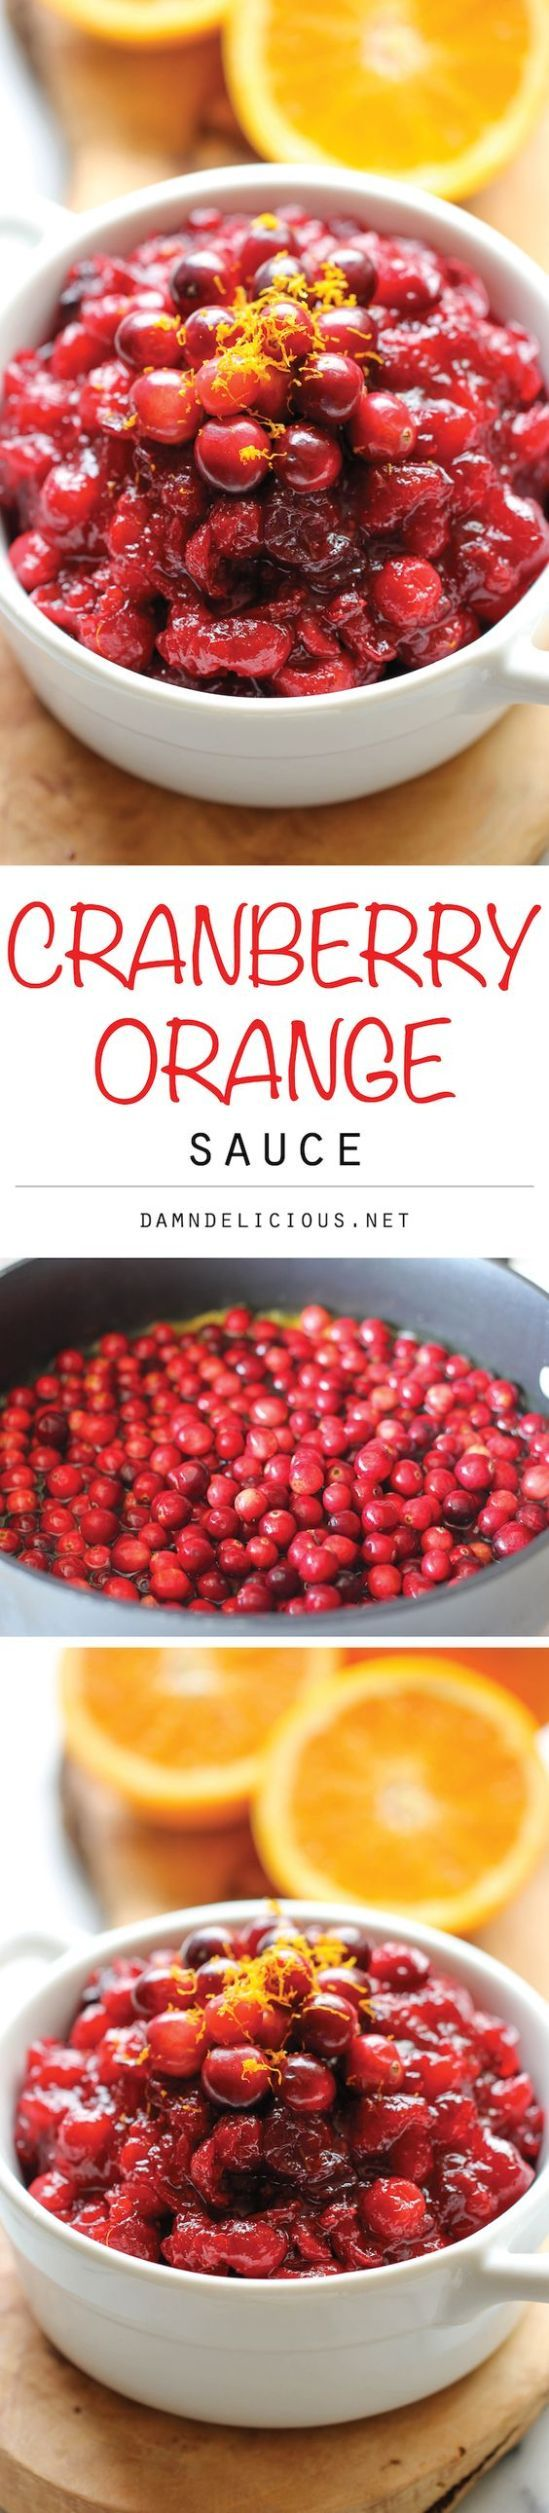 Cranberry Orange Sauce Recipe via Damn Delicious - The BEST Classic, Improved and Traditional Thanksgiving Dinner Menu Favorites Recipes - Main Dishes, Side Dishes, Appetizers, Salads, Yummy Desserts and more!